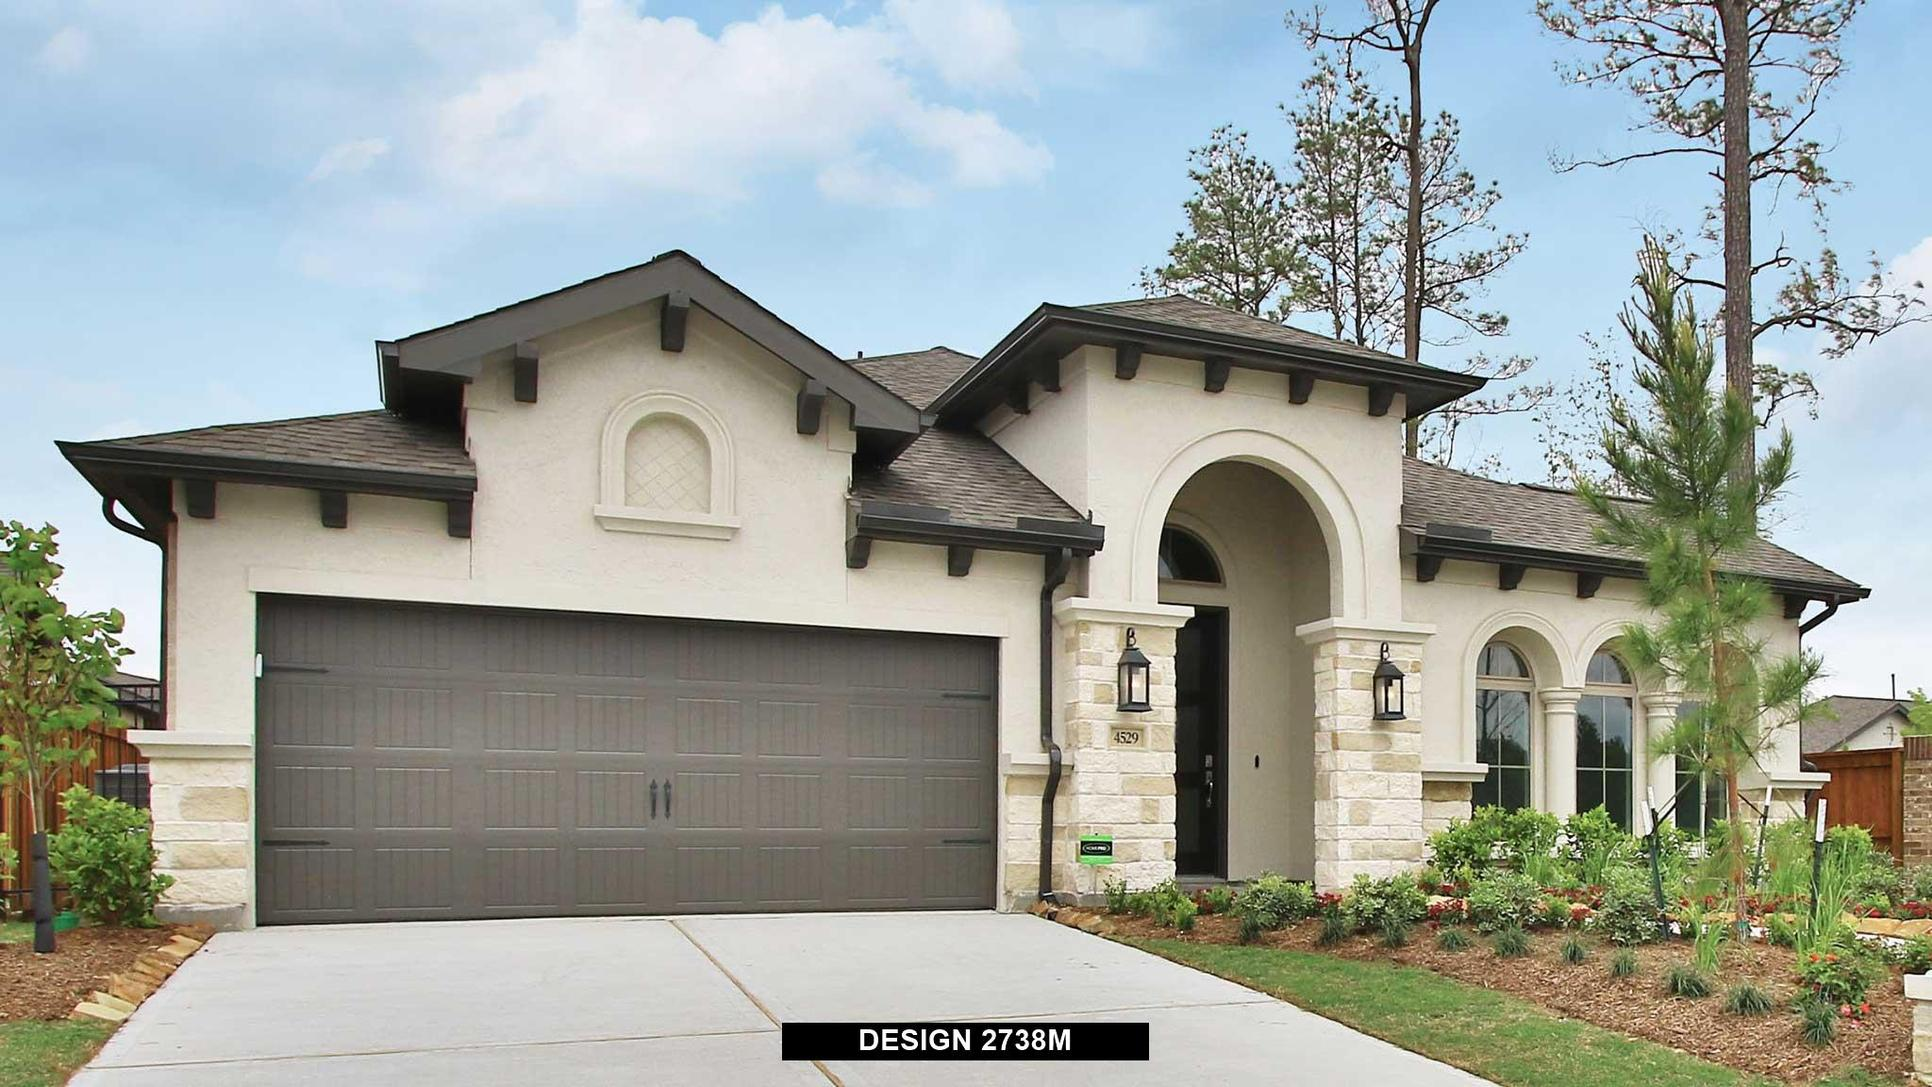 Plan 2738M:Representative photo.  Features and specifications may vary by community.